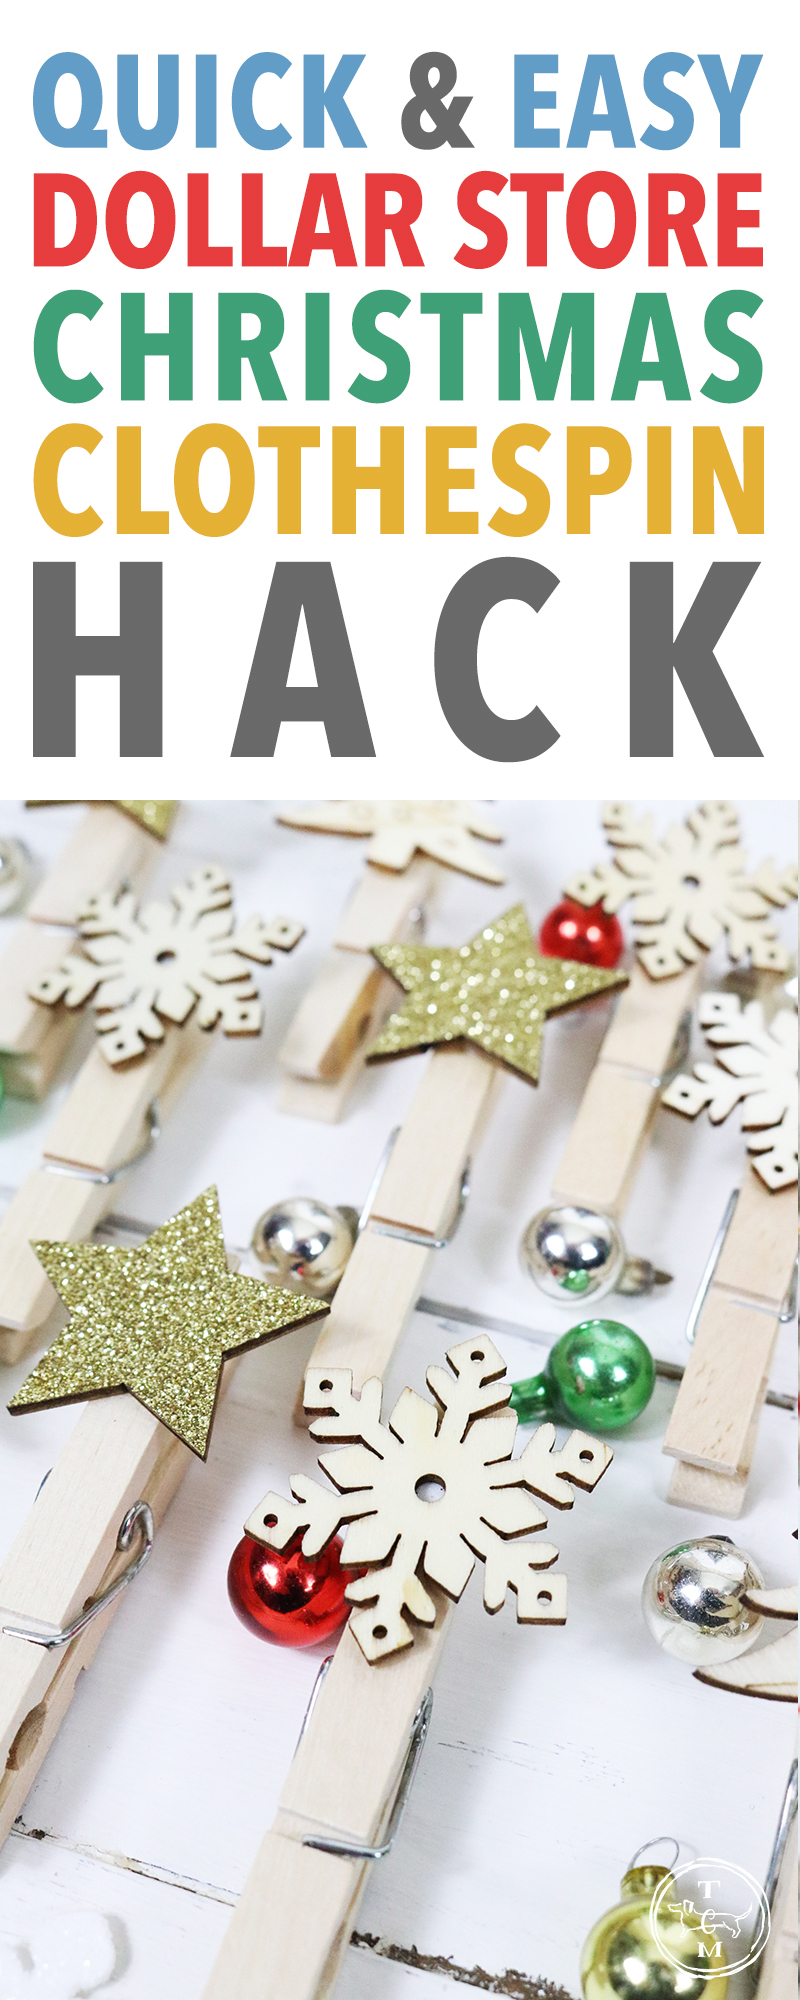 It's time for a Quick and Easy Dollar Store Christmas Clothespin Hack with a wonderful Farmhouse Charm... just waiting to be created so they can hang up all of your Holiday Cards!